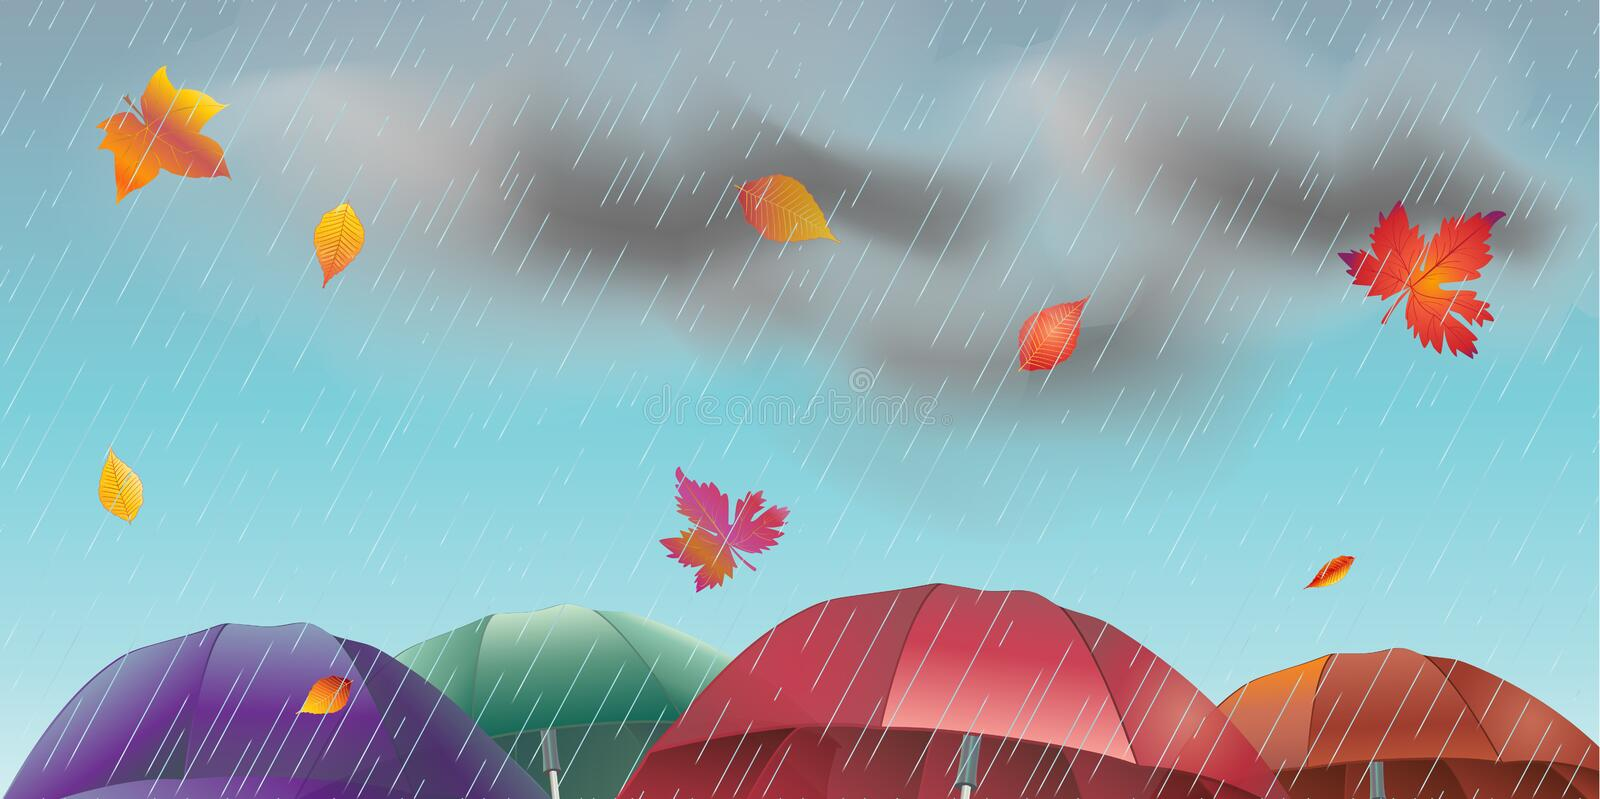 Download Rainy day stock vector. Illustration of diagonal, banner - 98103877